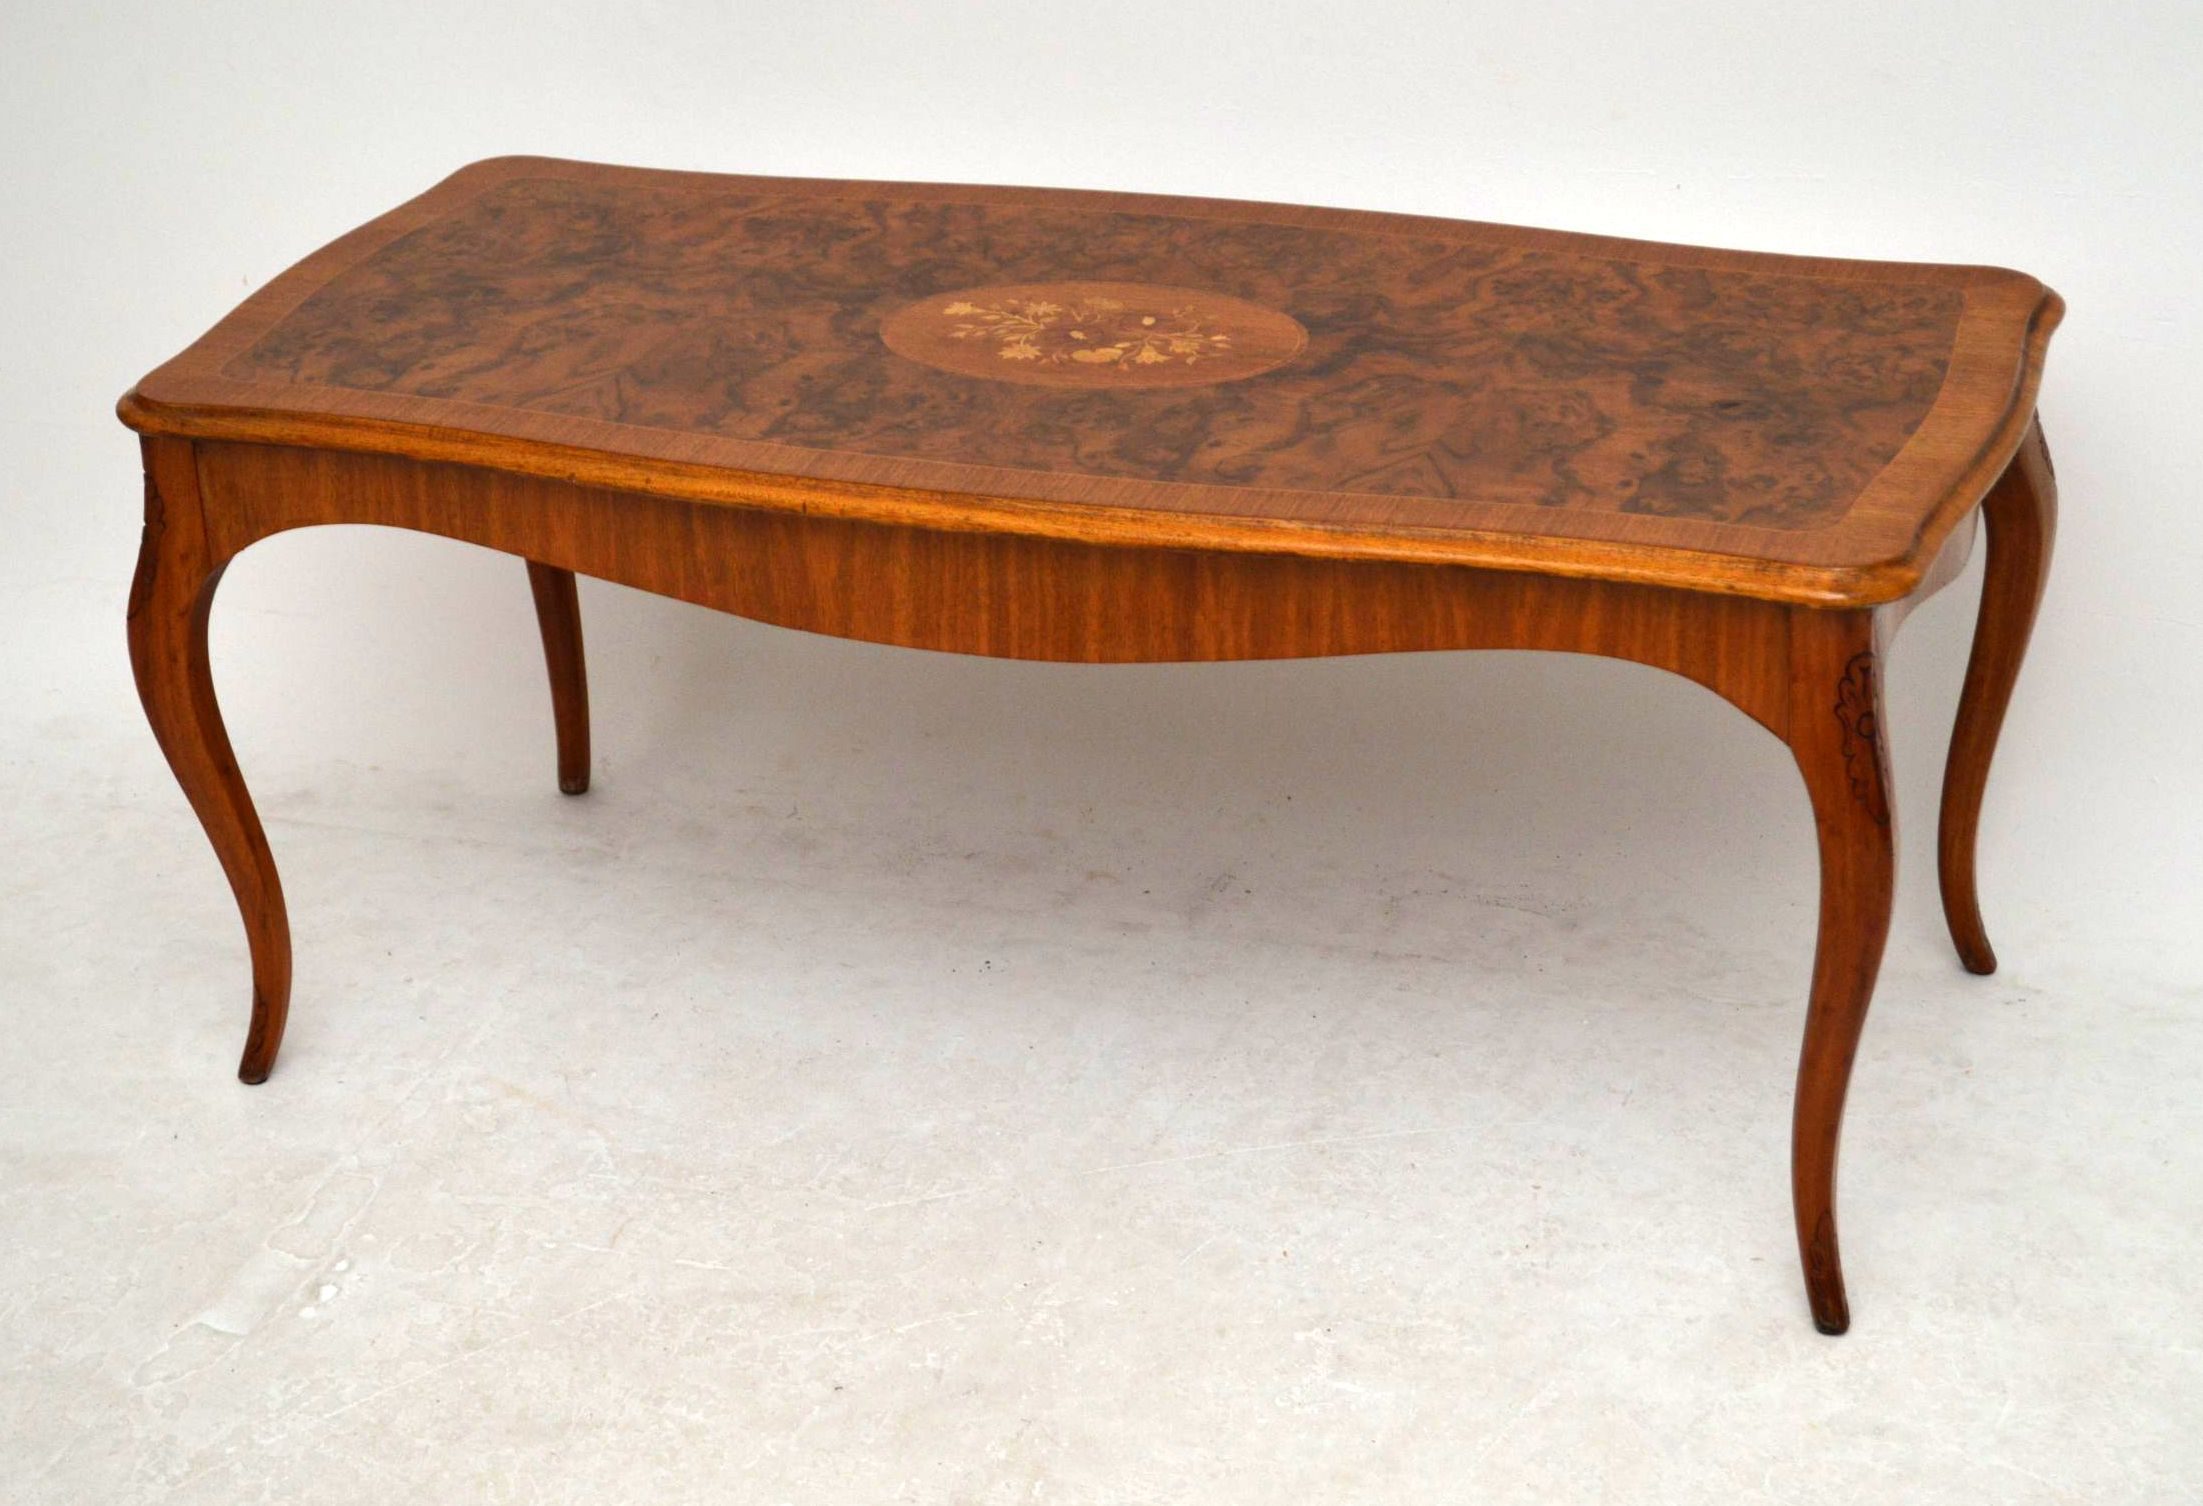 Antique French Style Inlaid Walnut Coffee Table